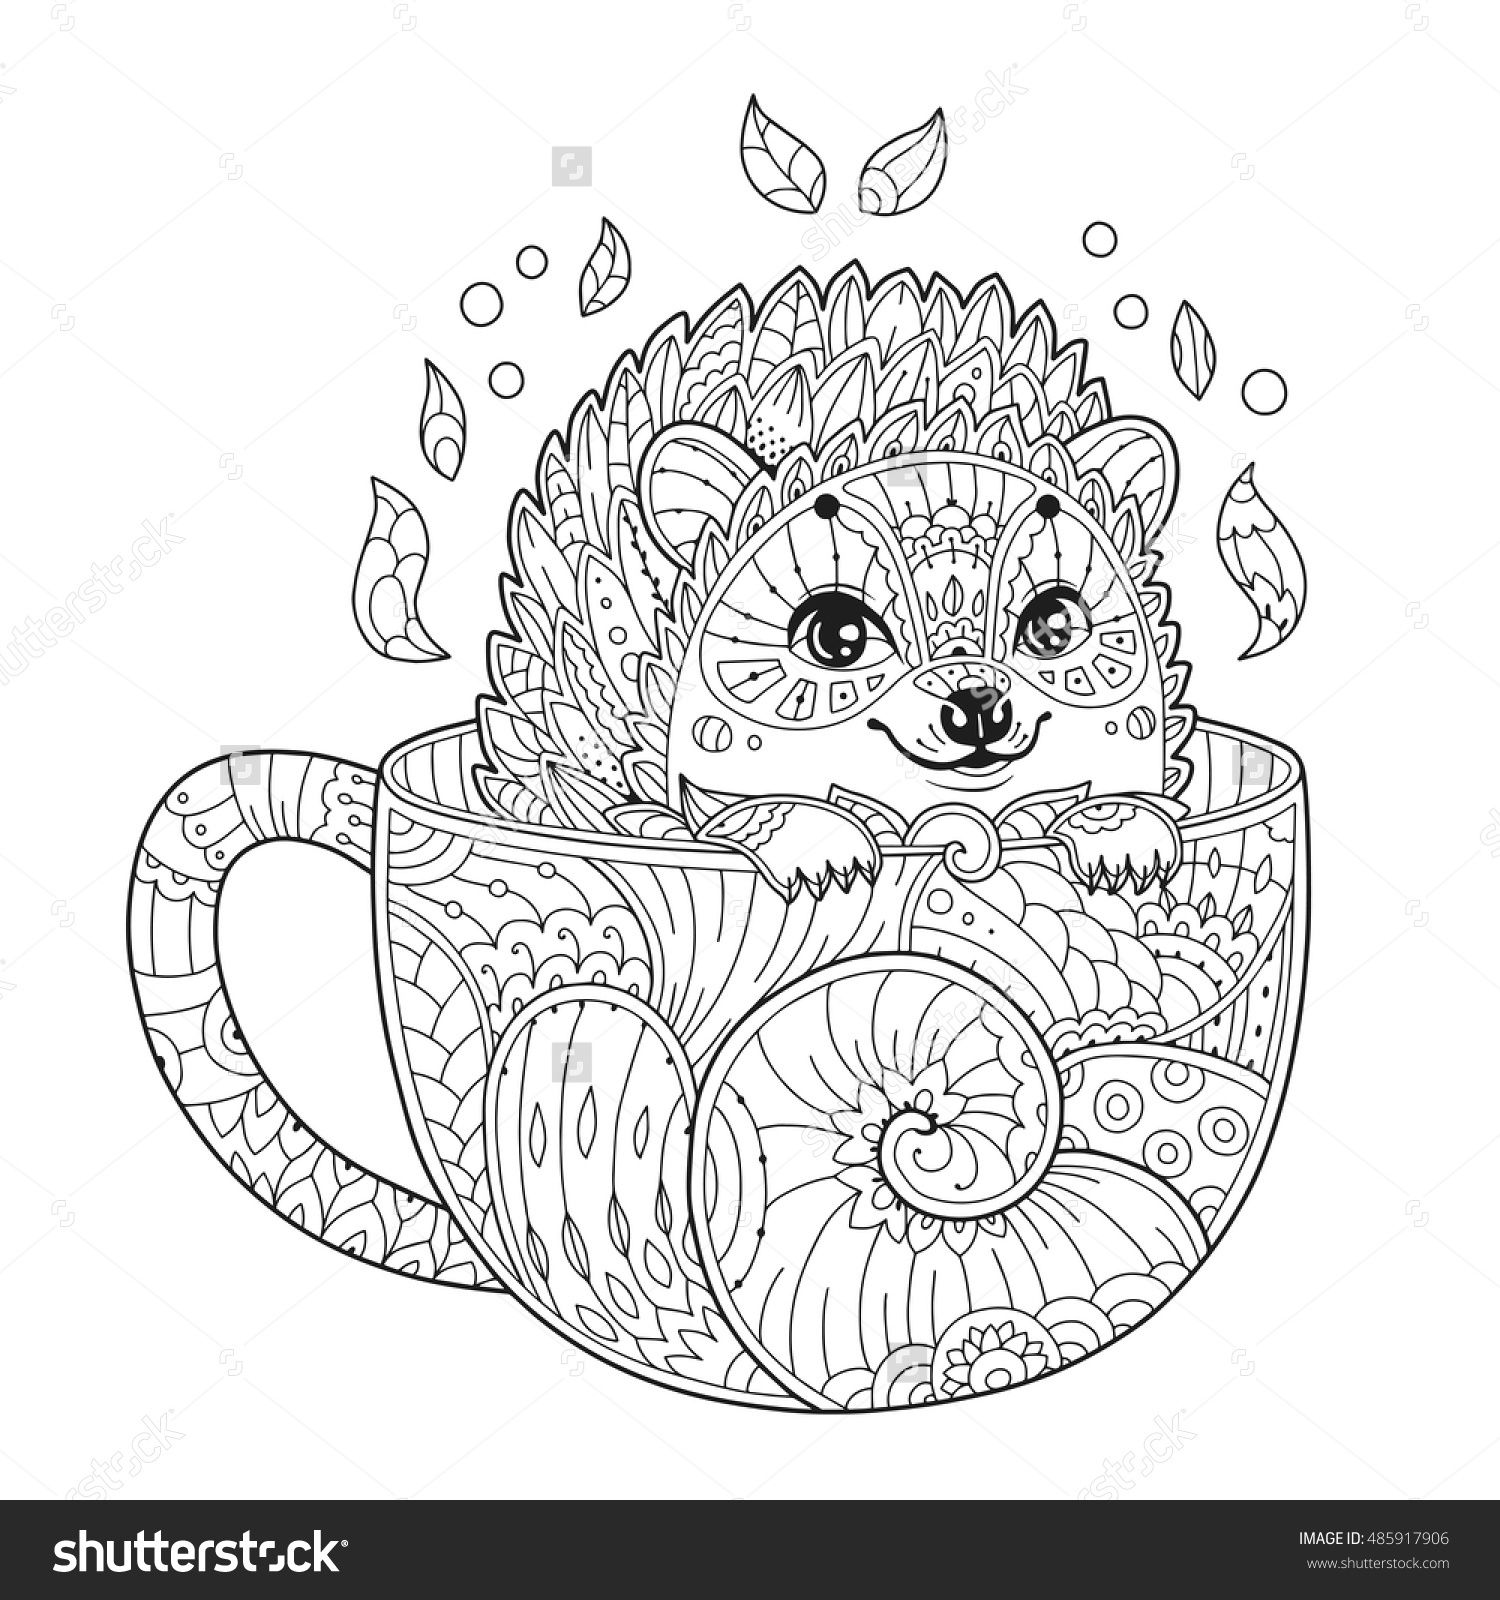 hedgehog in cup adult antistress coloring page with animal in zentangle style vector. Black Bedroom Furniture Sets. Home Design Ideas